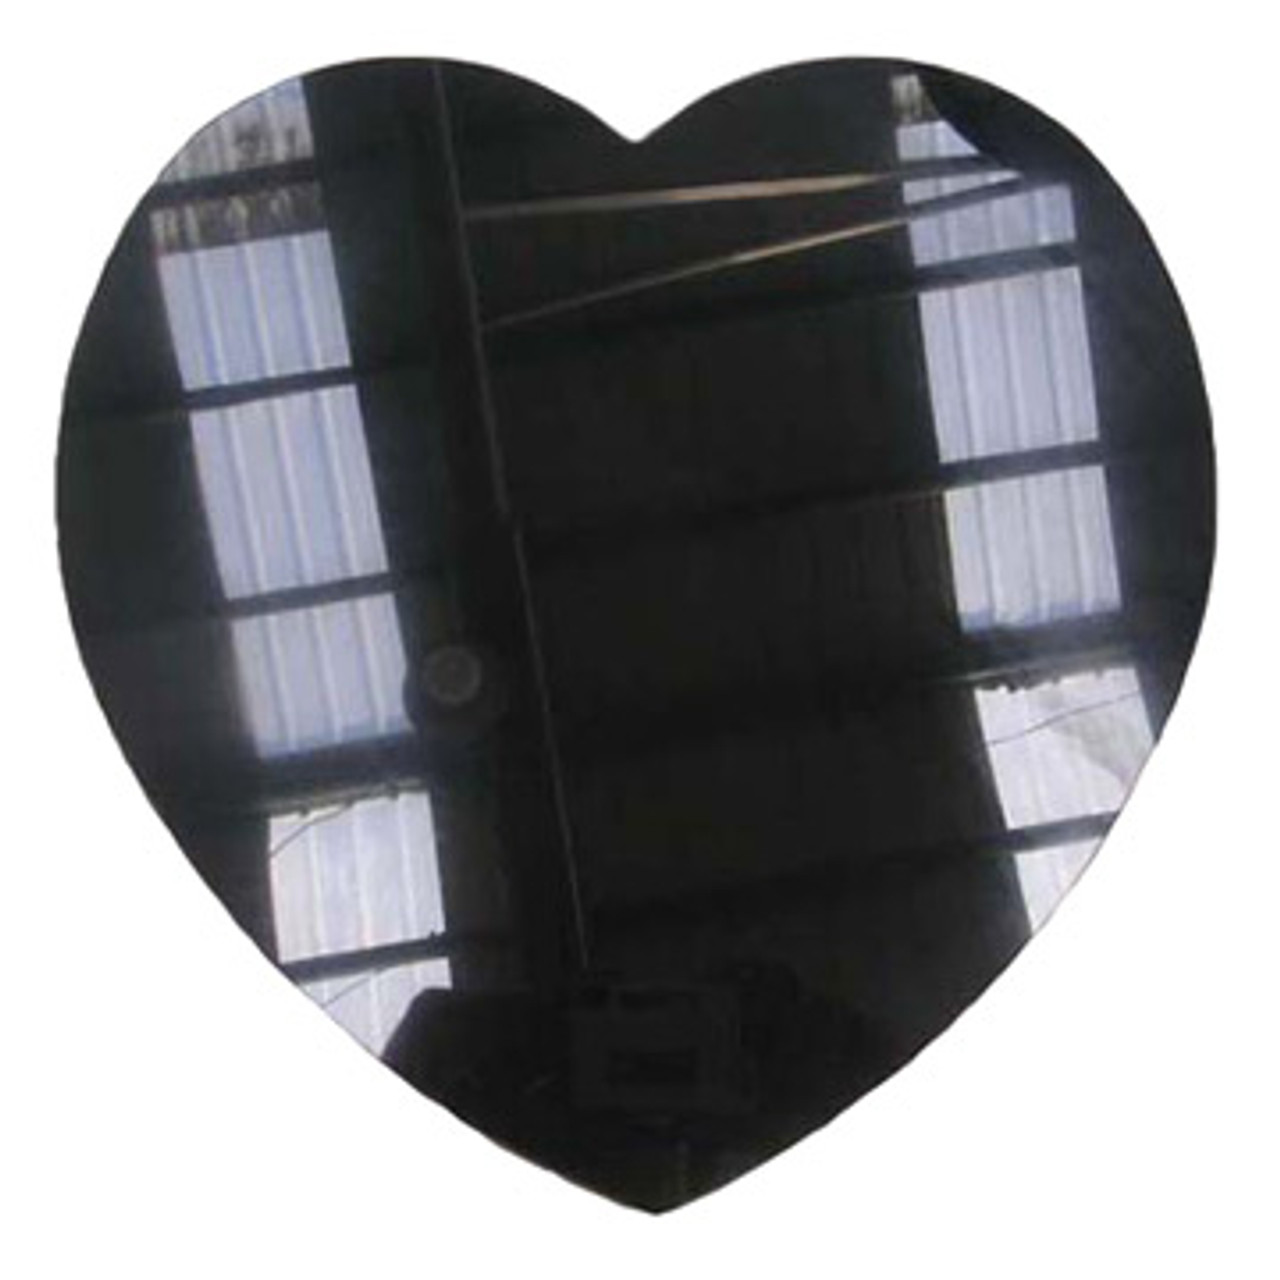 M-AB-10HeartlASP/:  LaserGrade Absolute Black Marble, 10 inch Heart x 8mm, ASP, All Surfaces Polished (6F) - Case of 10